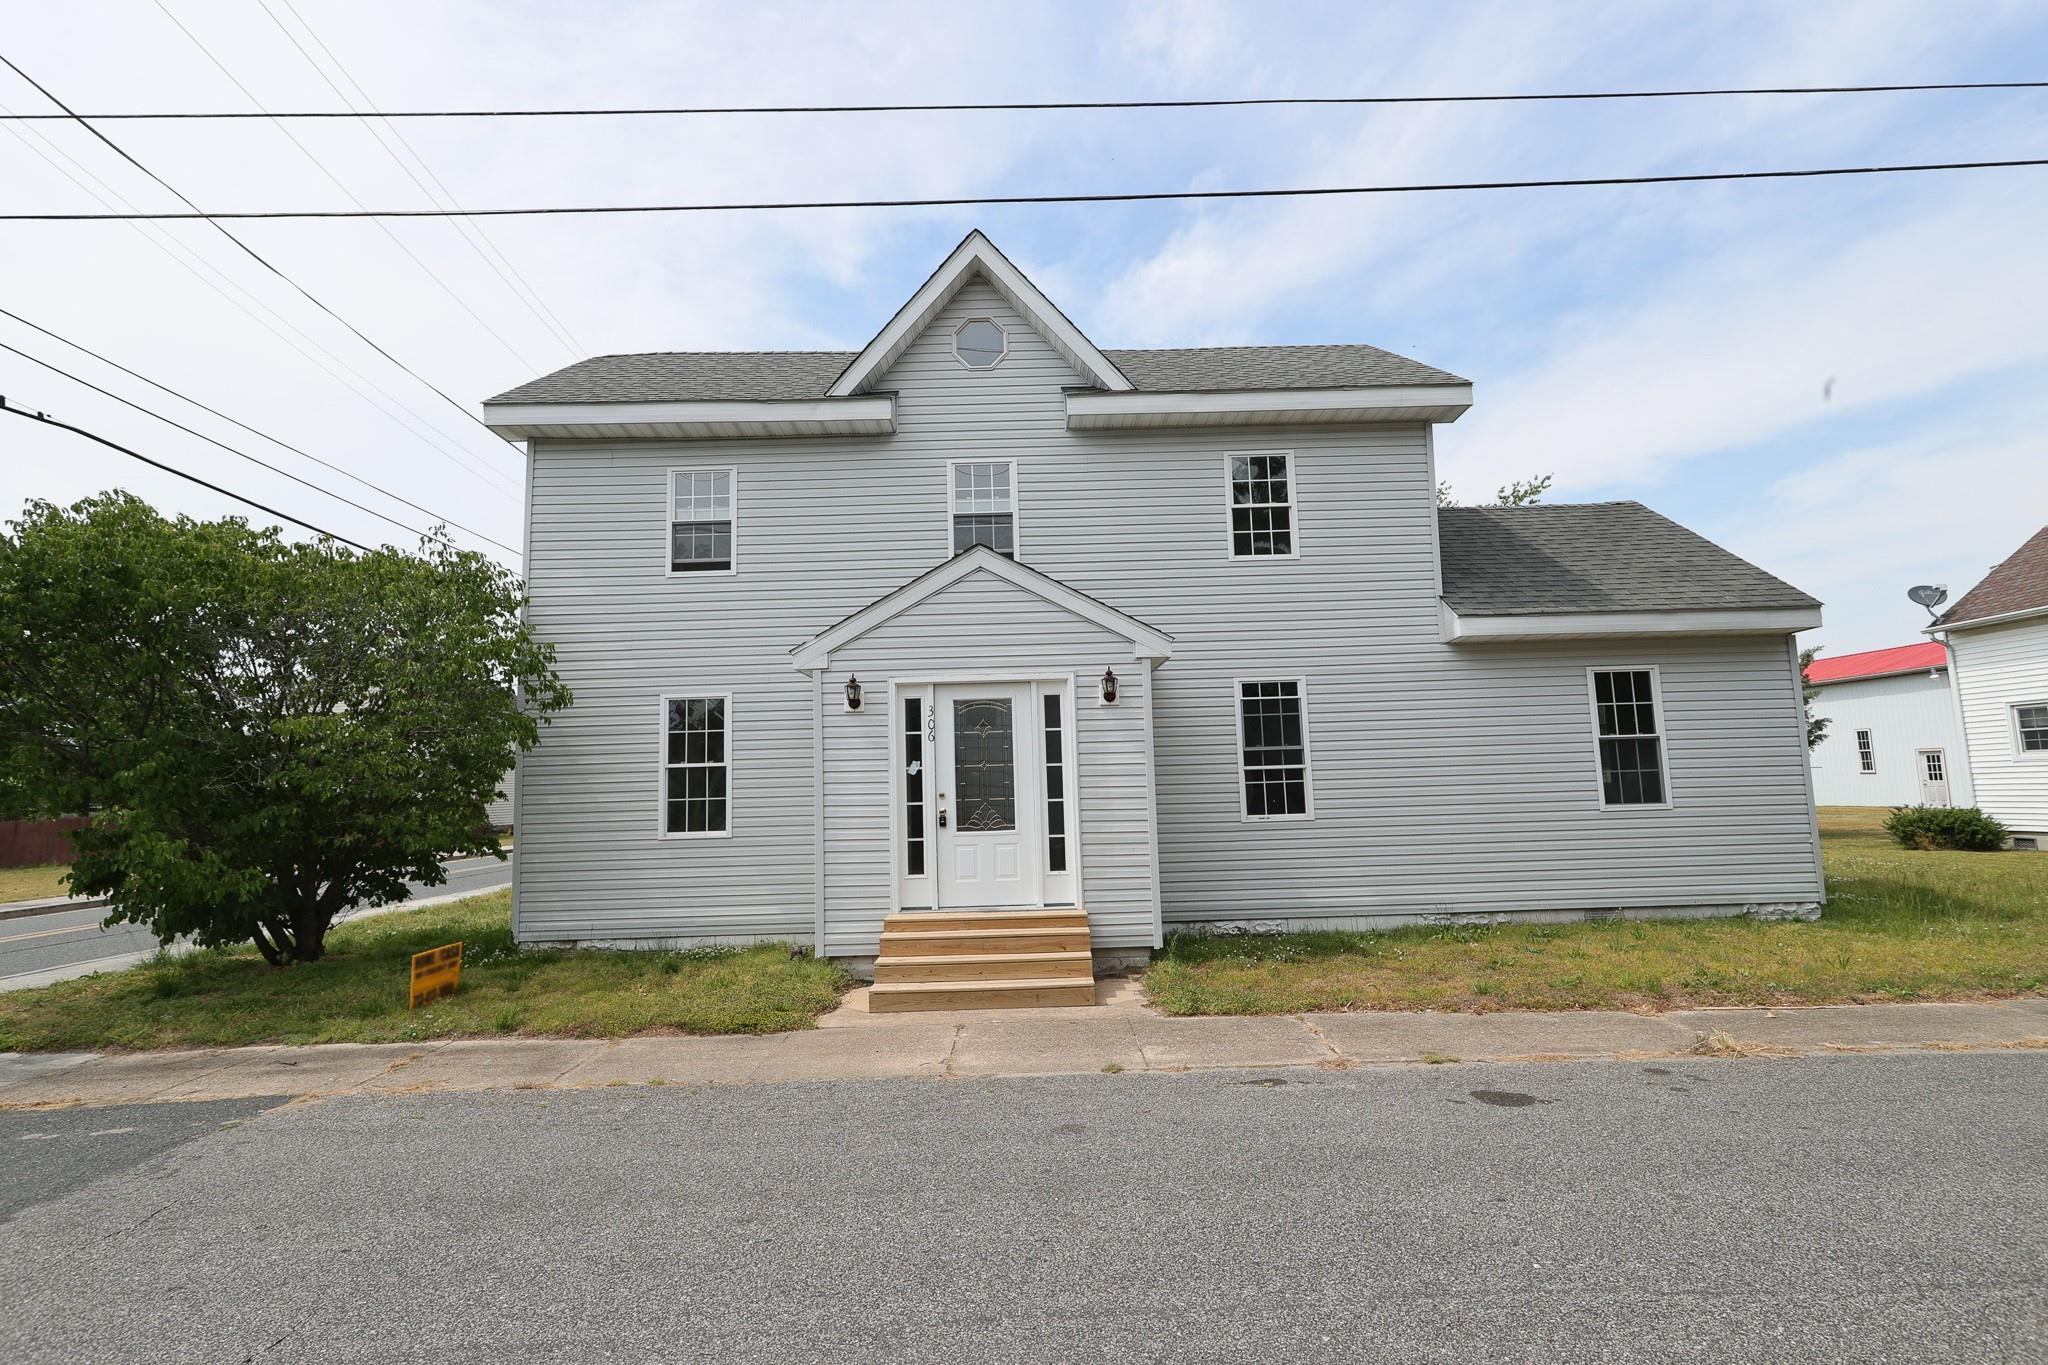 306 Waters St, Sharptown Property Photo - Other, MD real estate listing